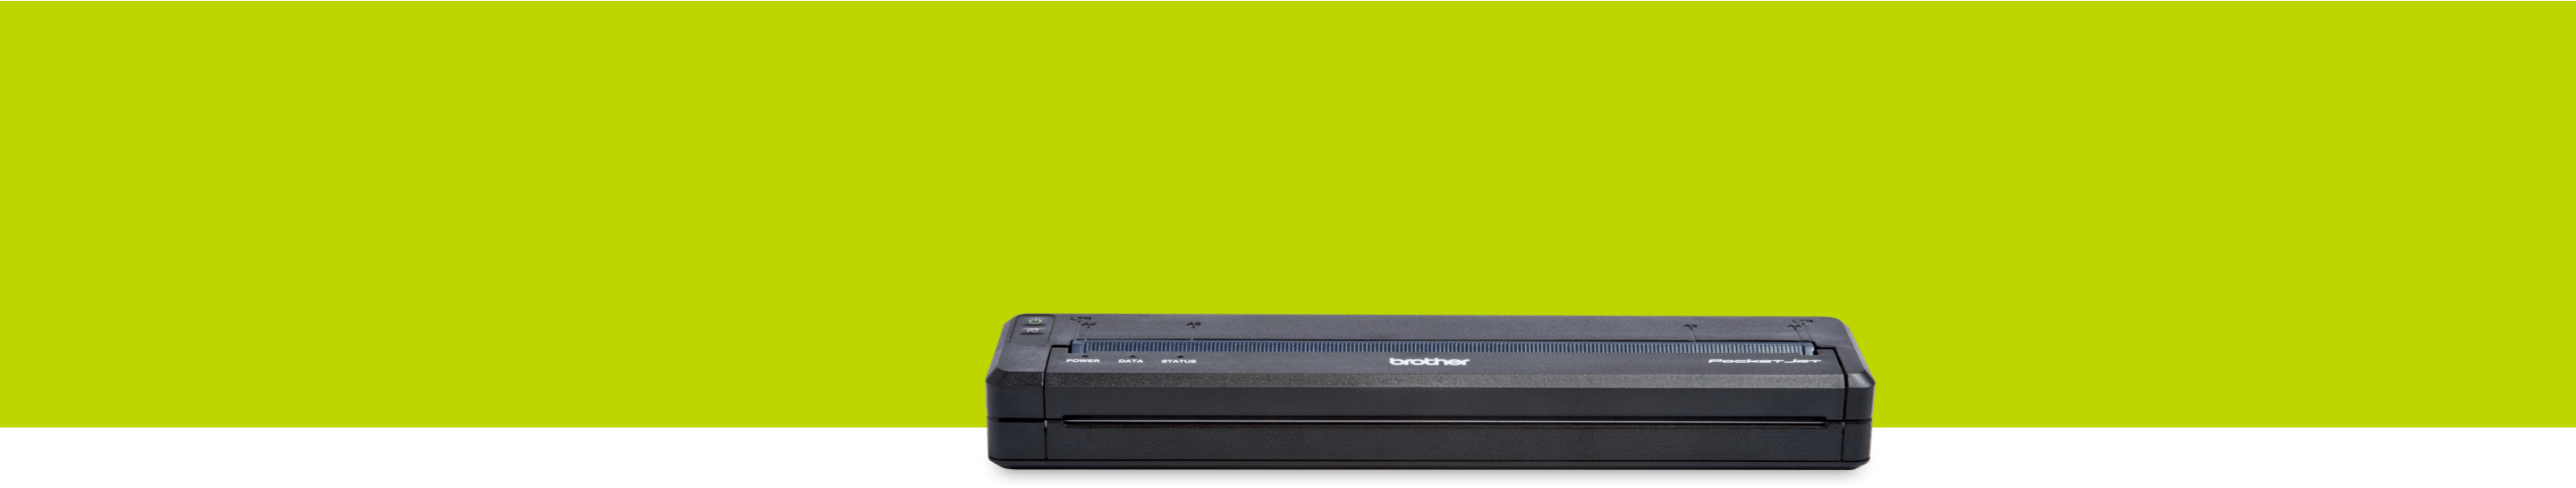 Pocketjet printer on a green background